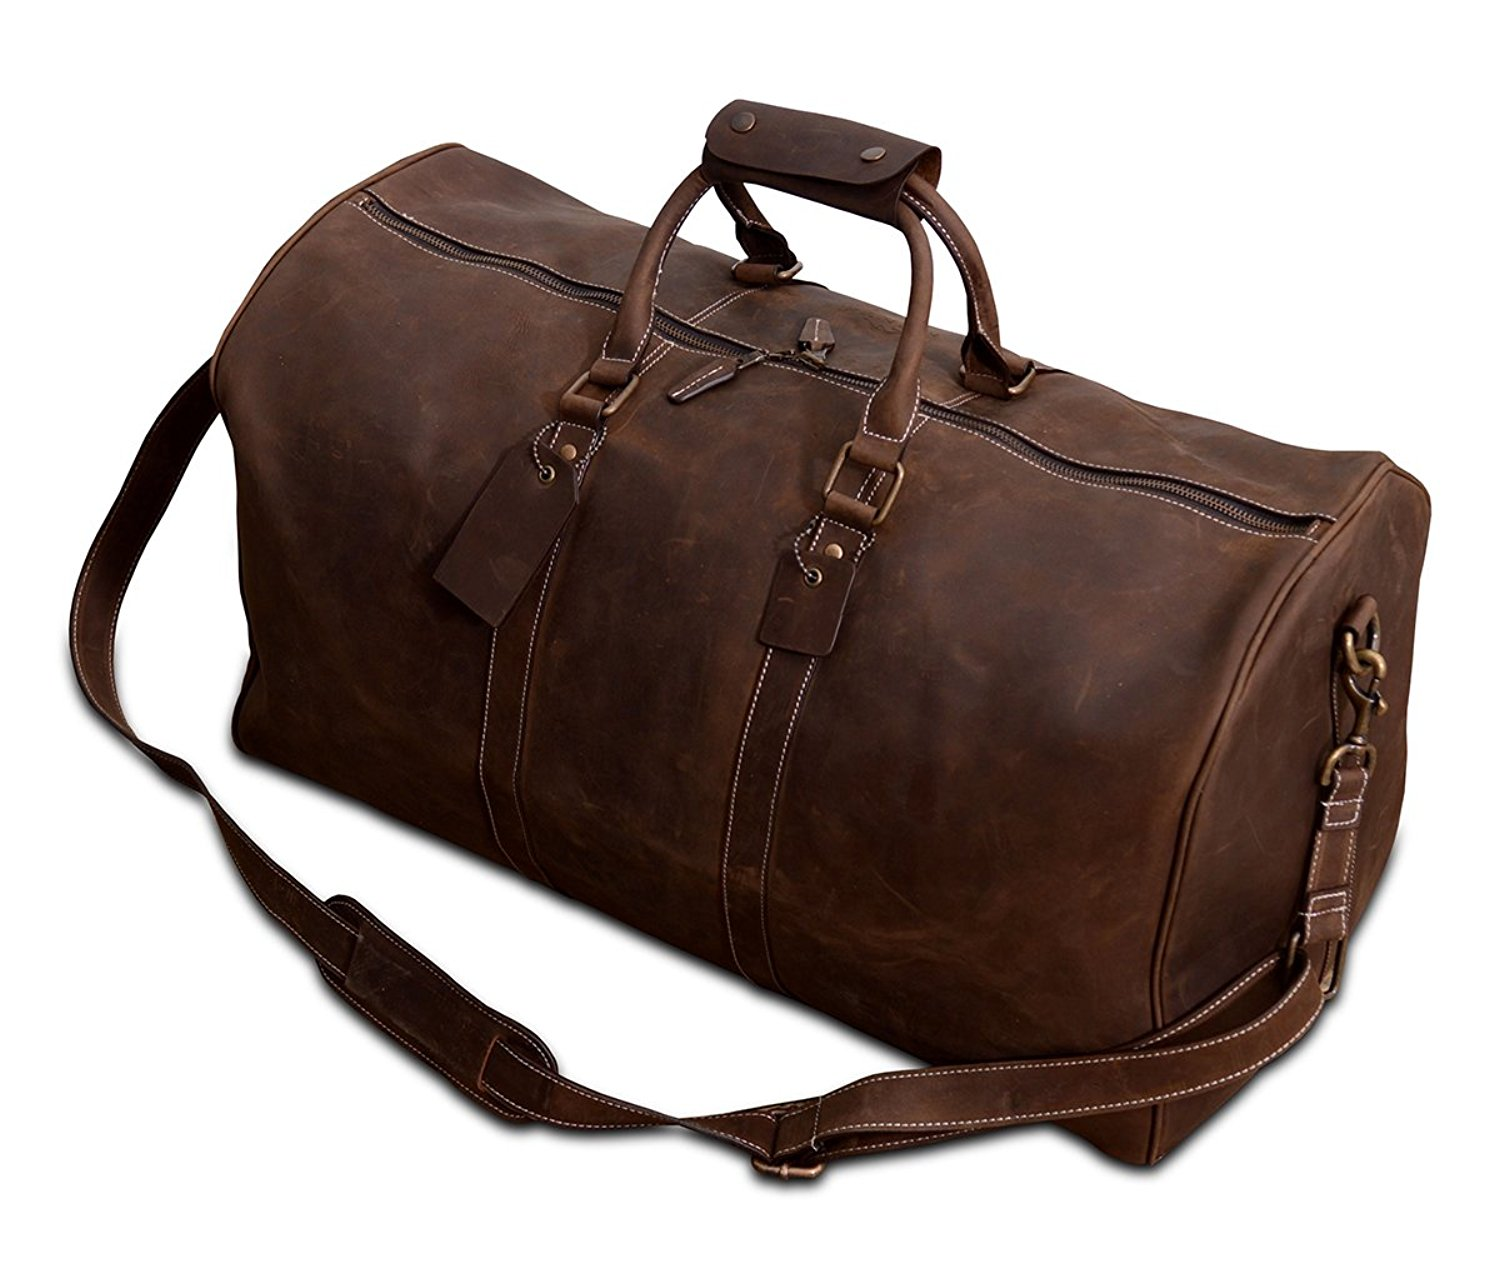 Xport Designs MONT Gokina - Vintage Leather Duffel Bag - Brown Leather Duffel - Carry On - Weekend Bag